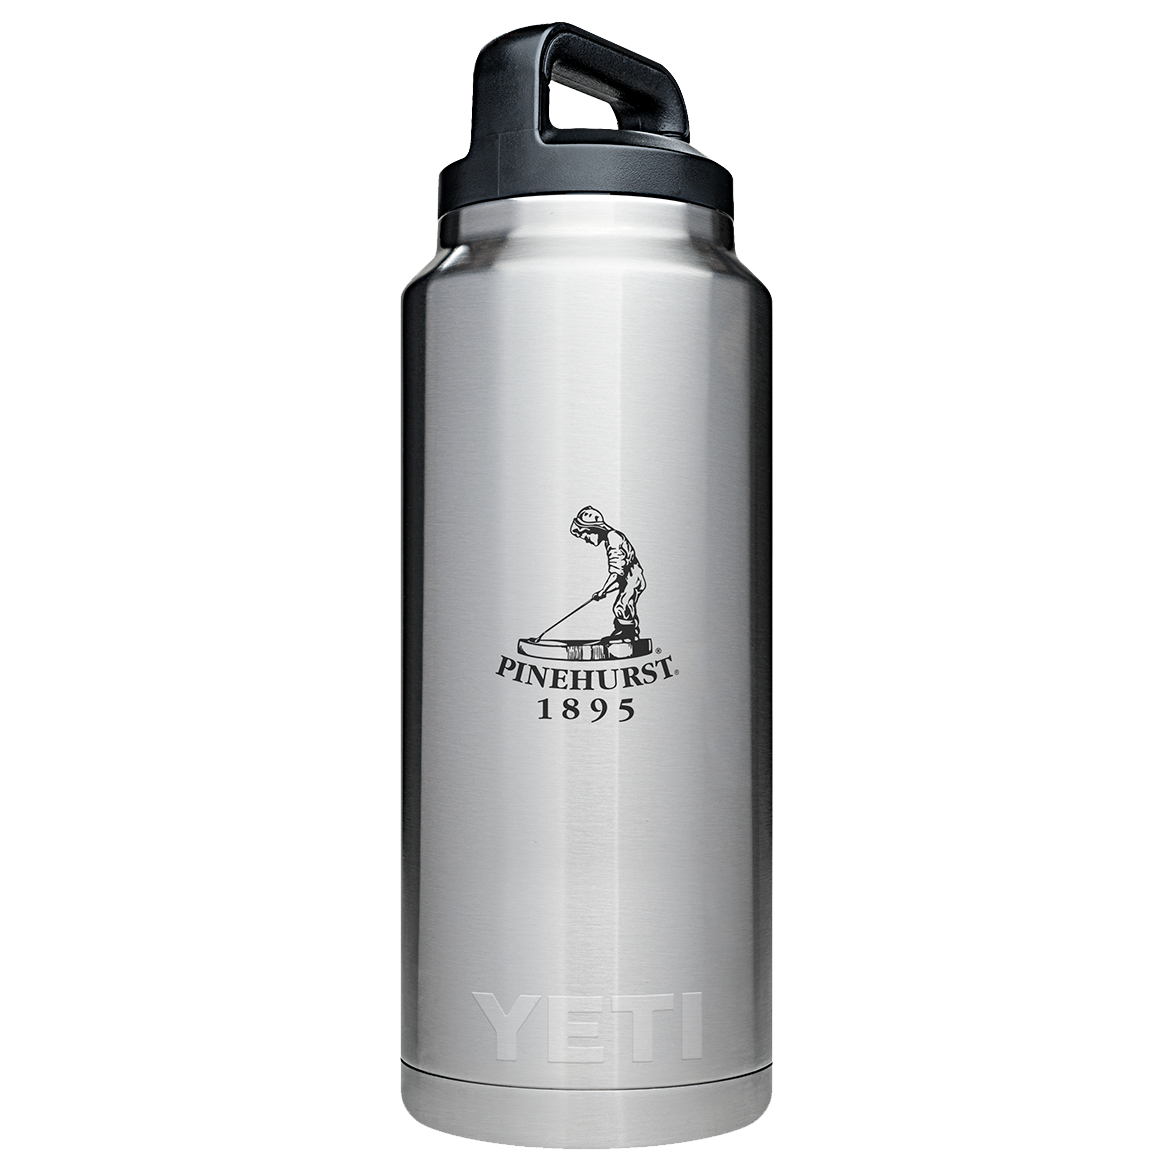 Yeti - Pinehurst Rambler 36oz Bottle